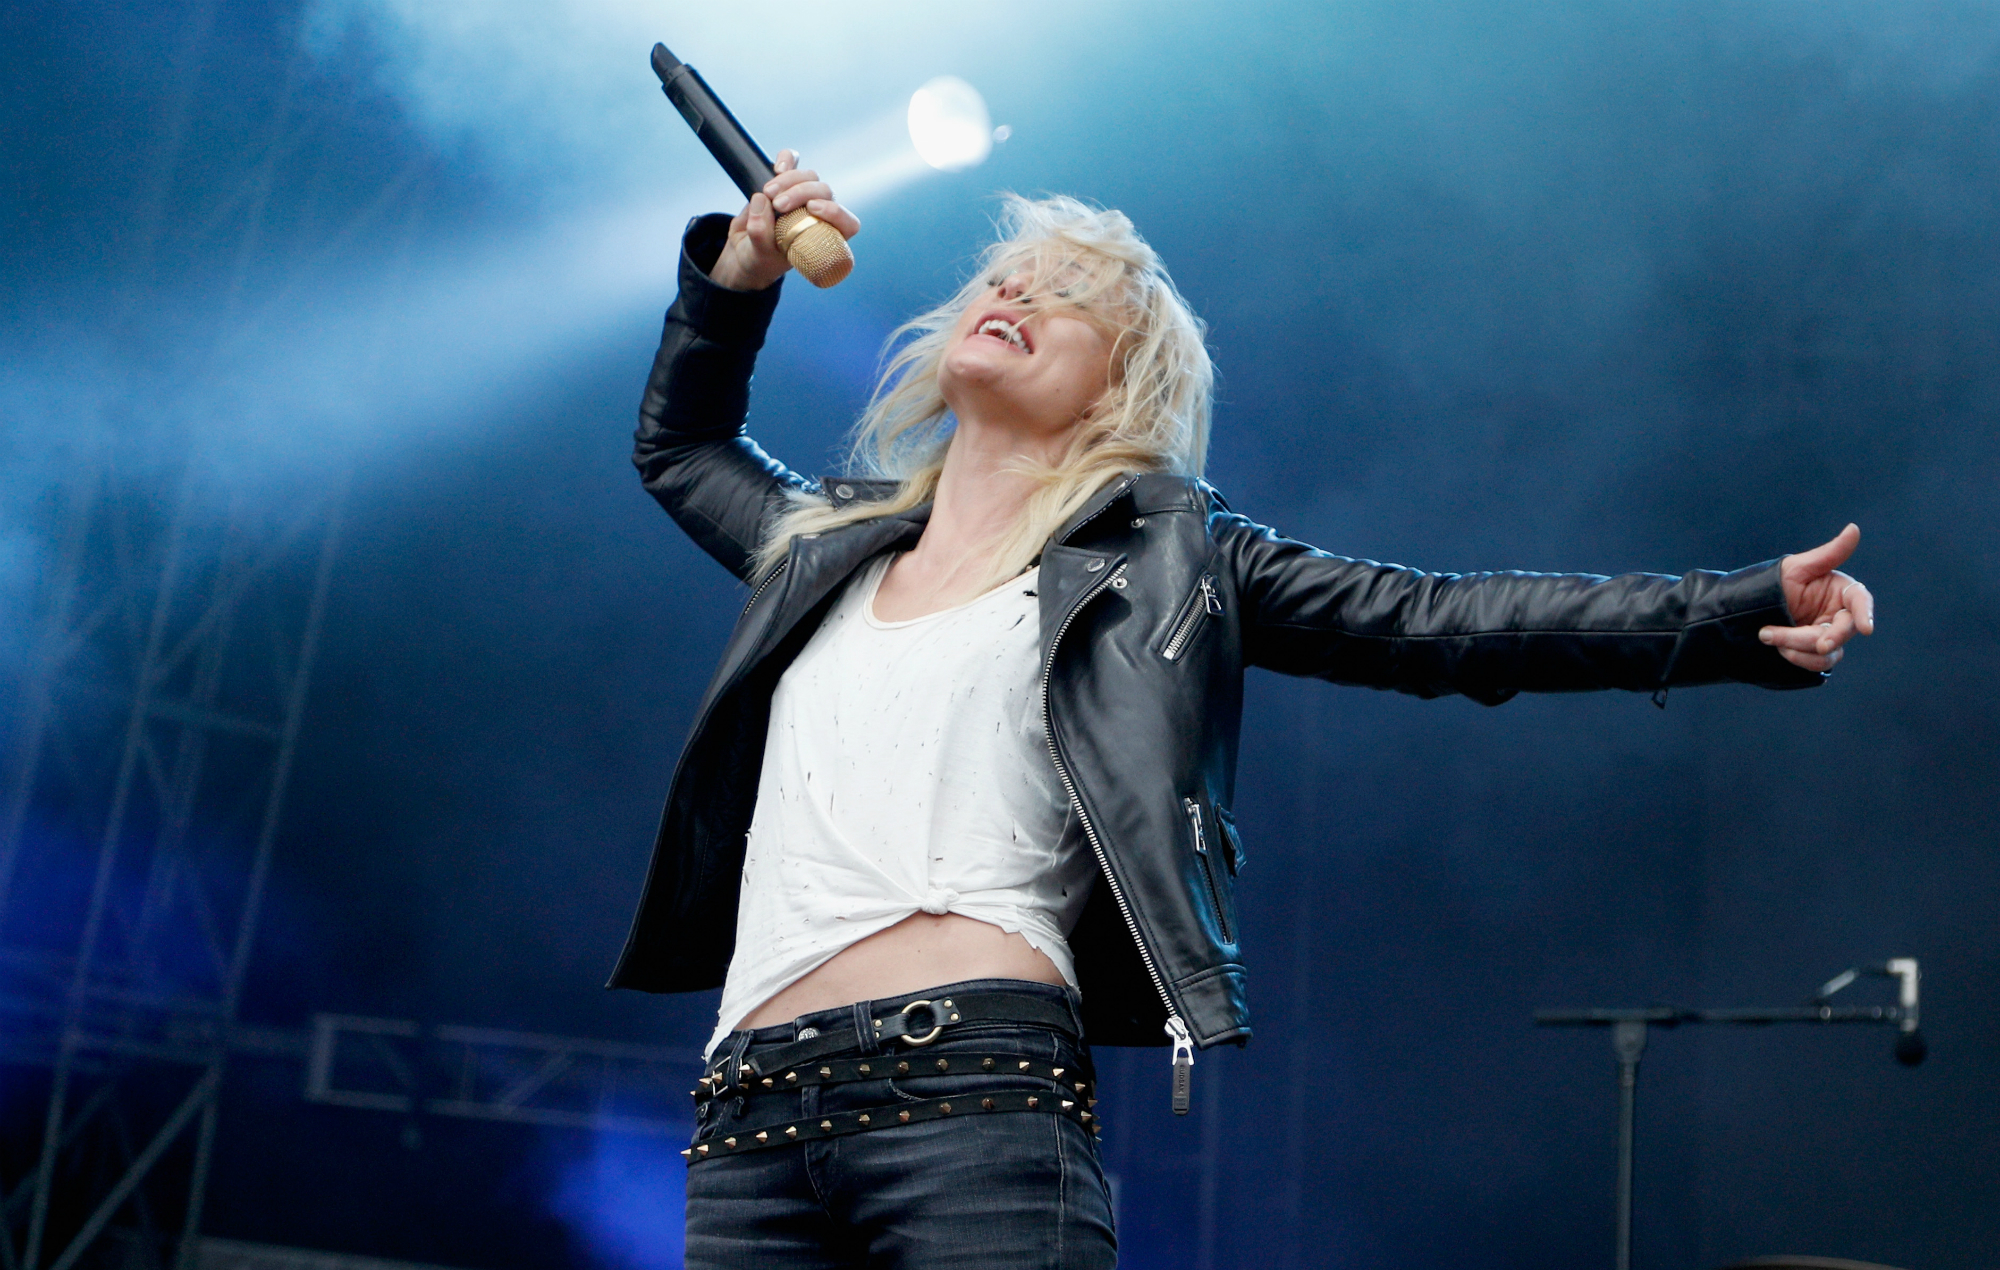 Metric S Emily Haines There S Been A Surge In The